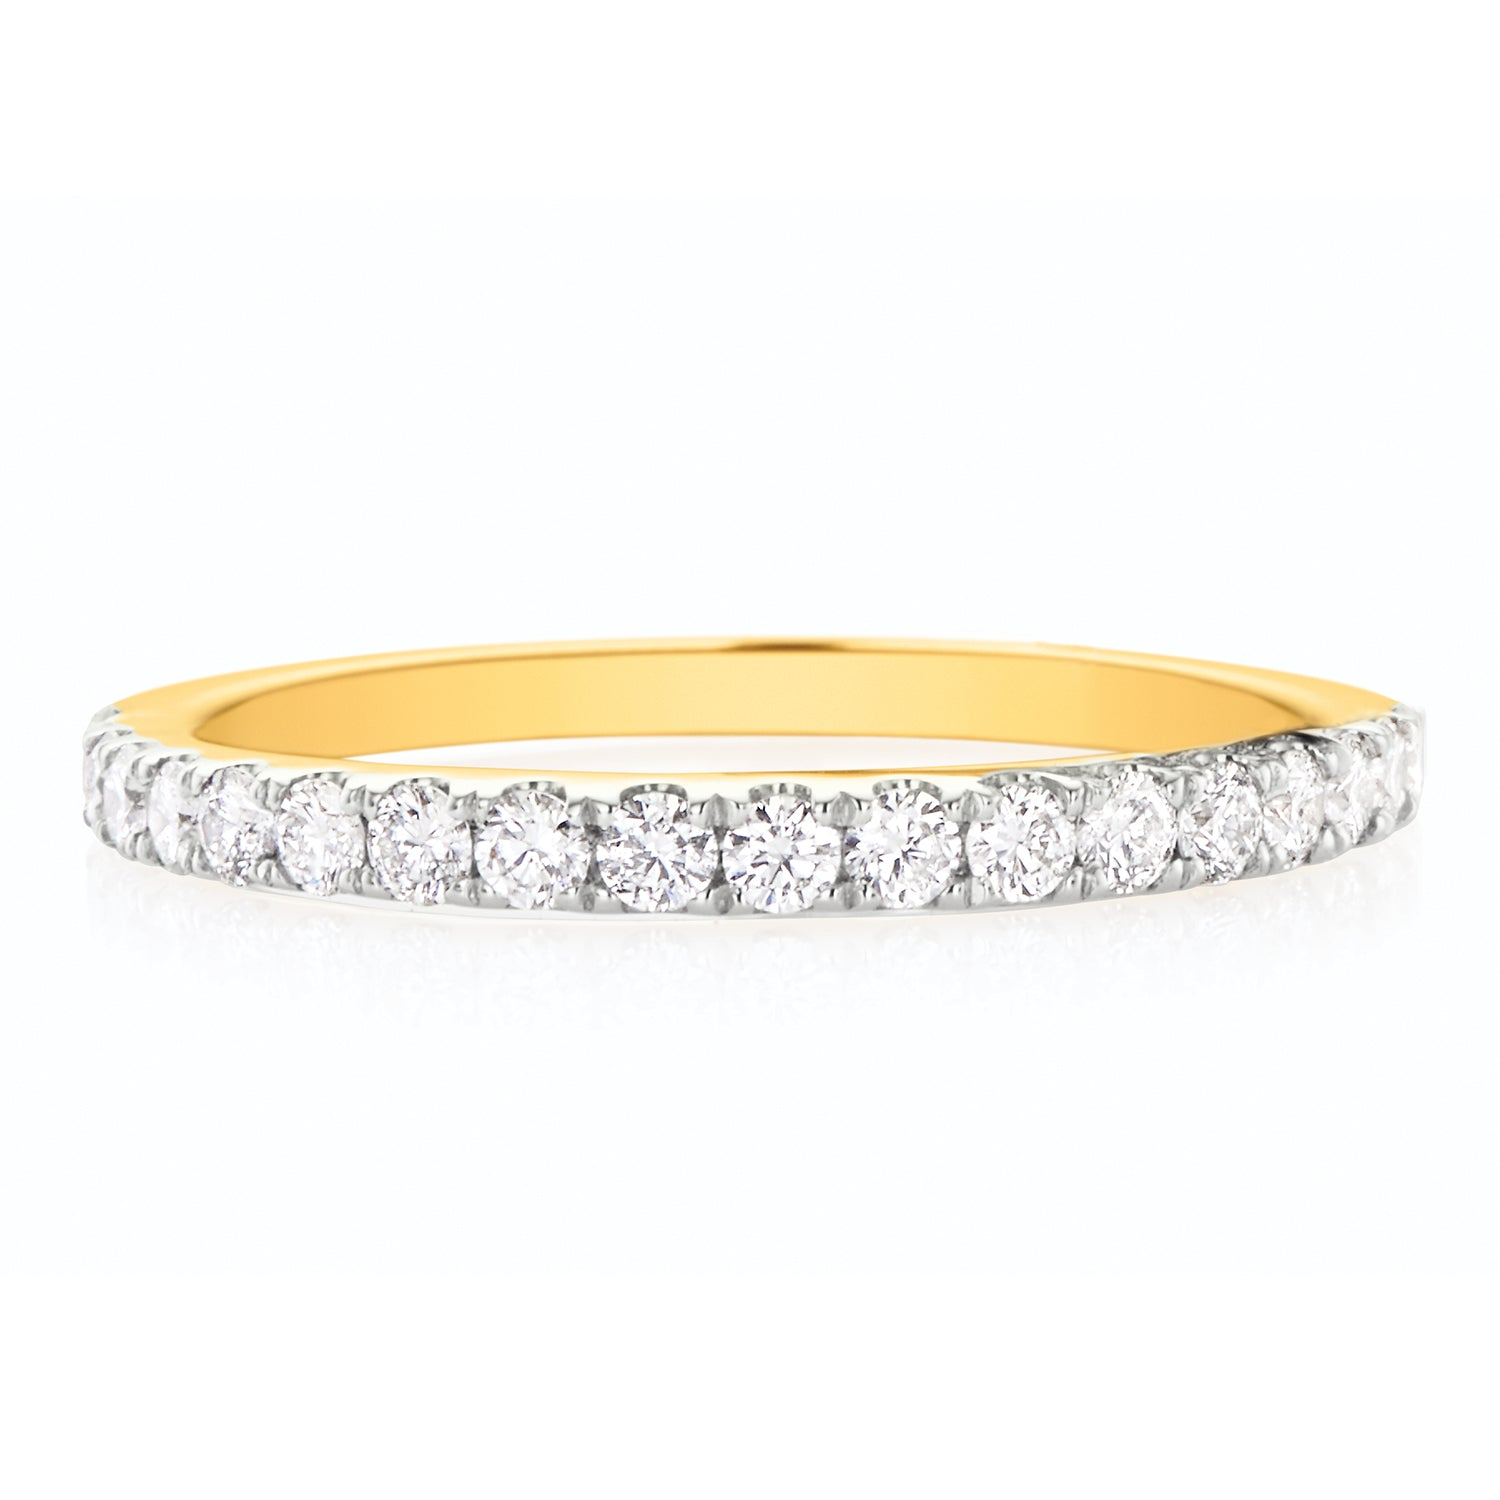 Halo 18ct Yellow Gold Round Brilliant Cut with 0.40 CARAT tw of Diamonds